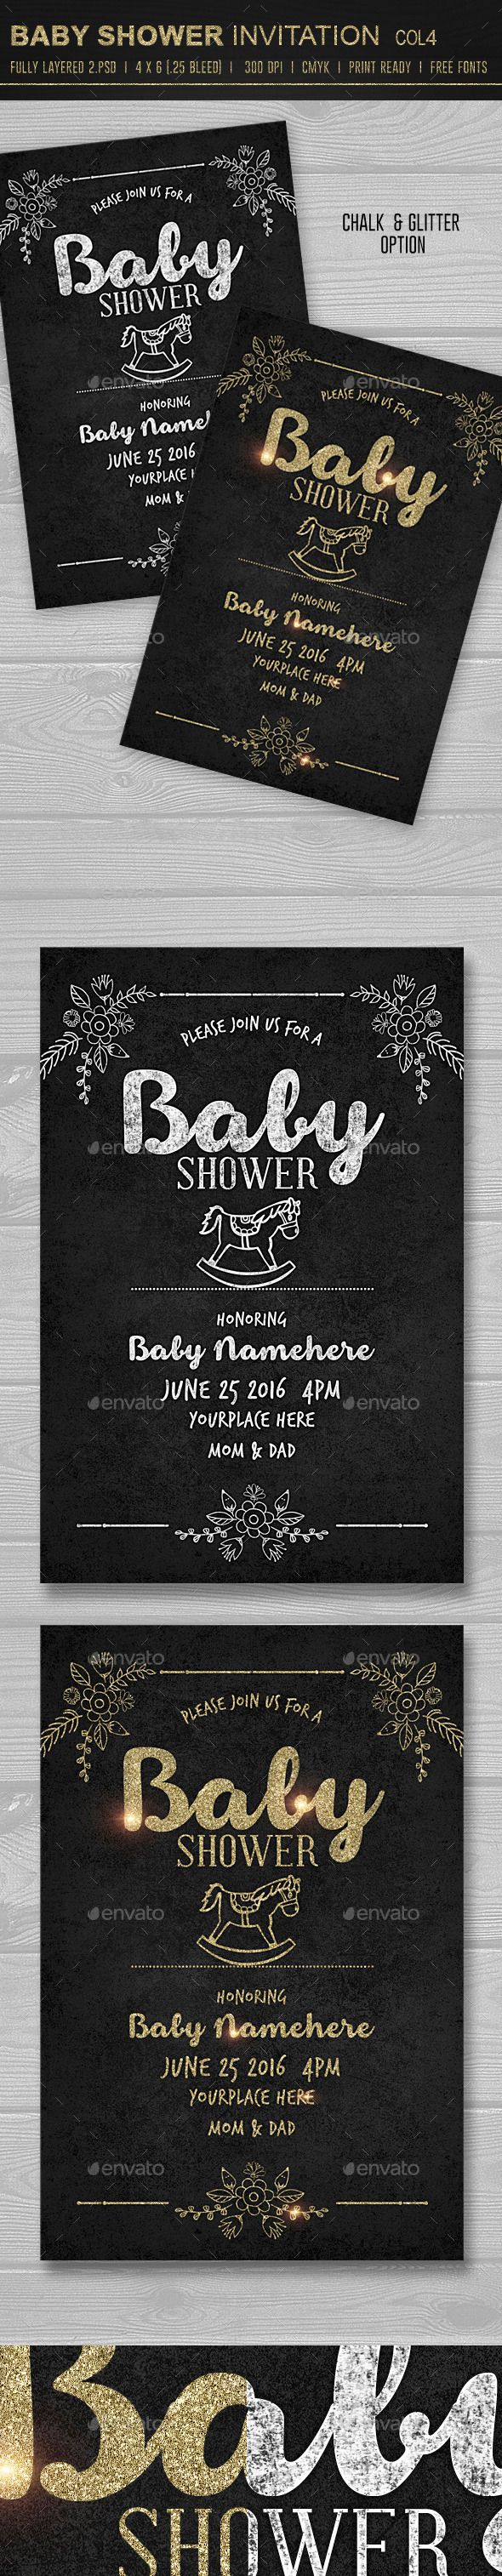 Baby Shower Invitation Template 20 best Invitation